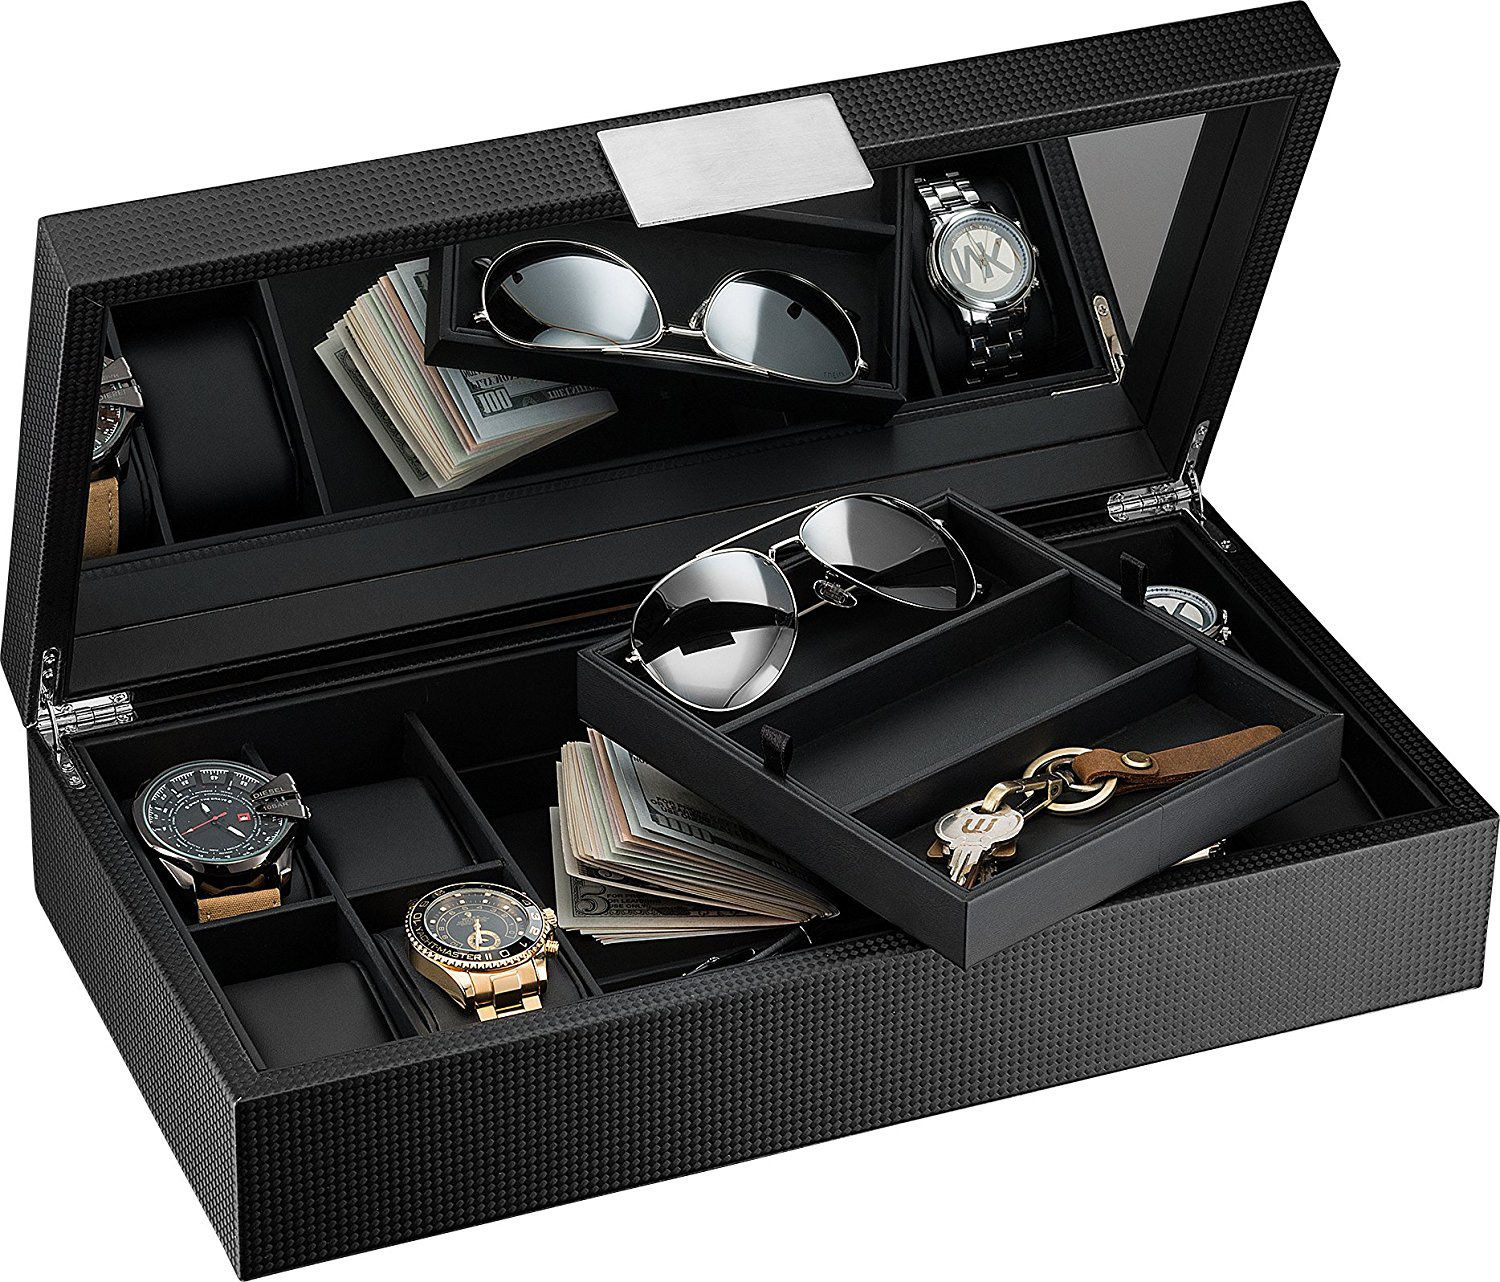 19+ Mens jewelry box for necklaces information